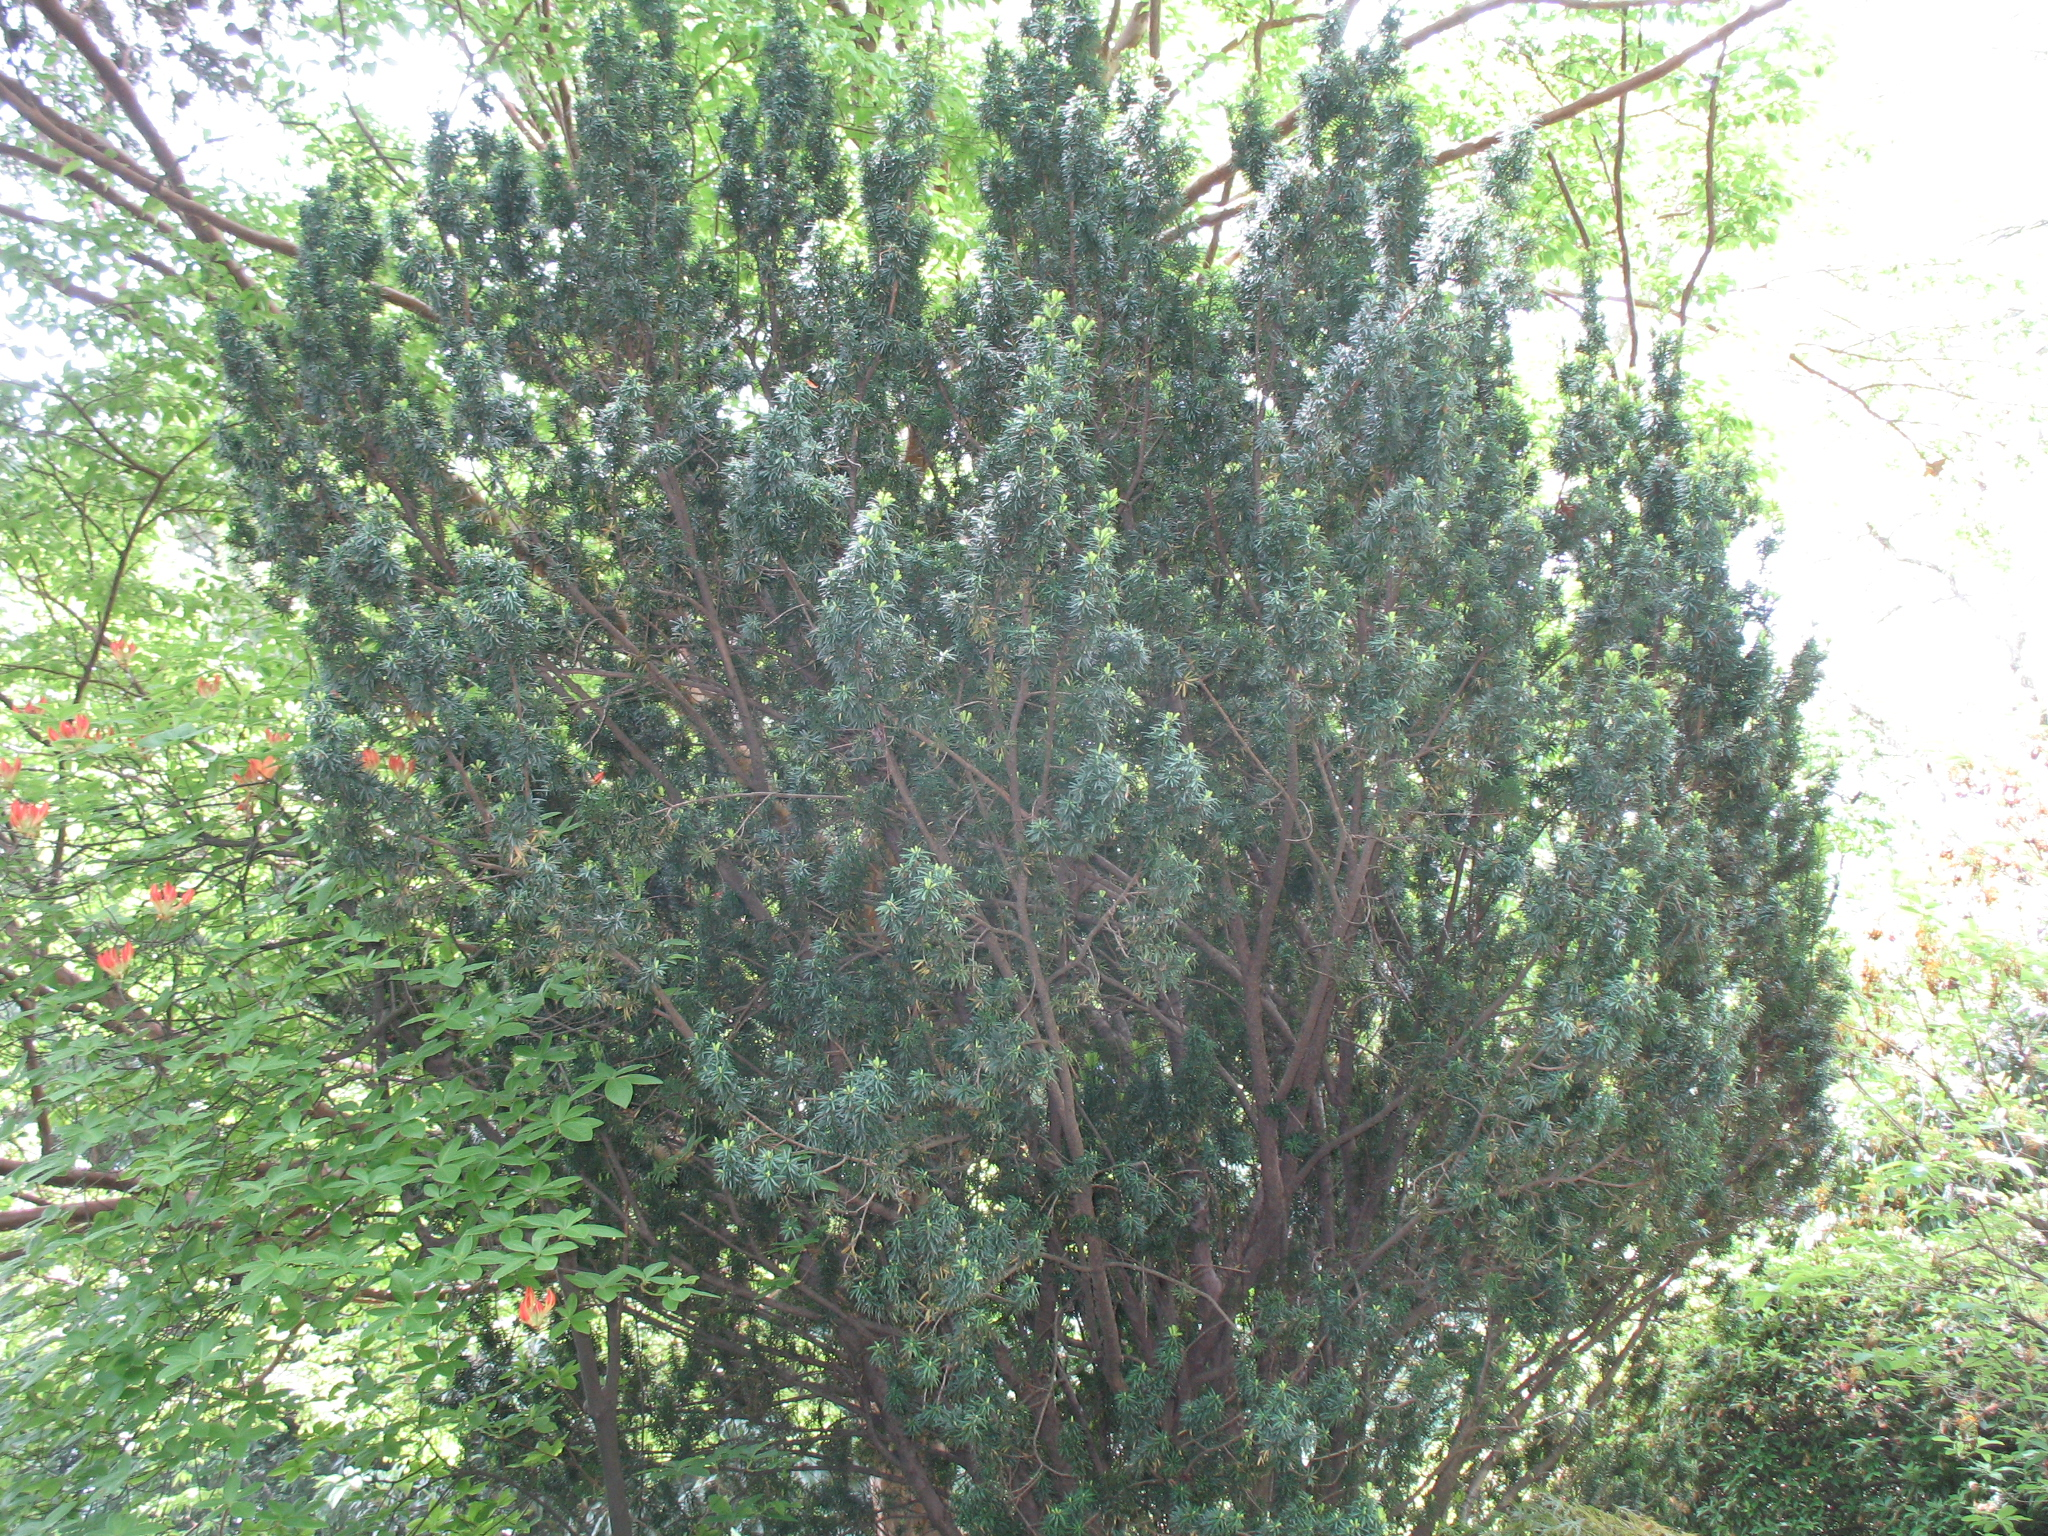 Taxus baccata / Yew, Common Yew, European Yew, English Yew